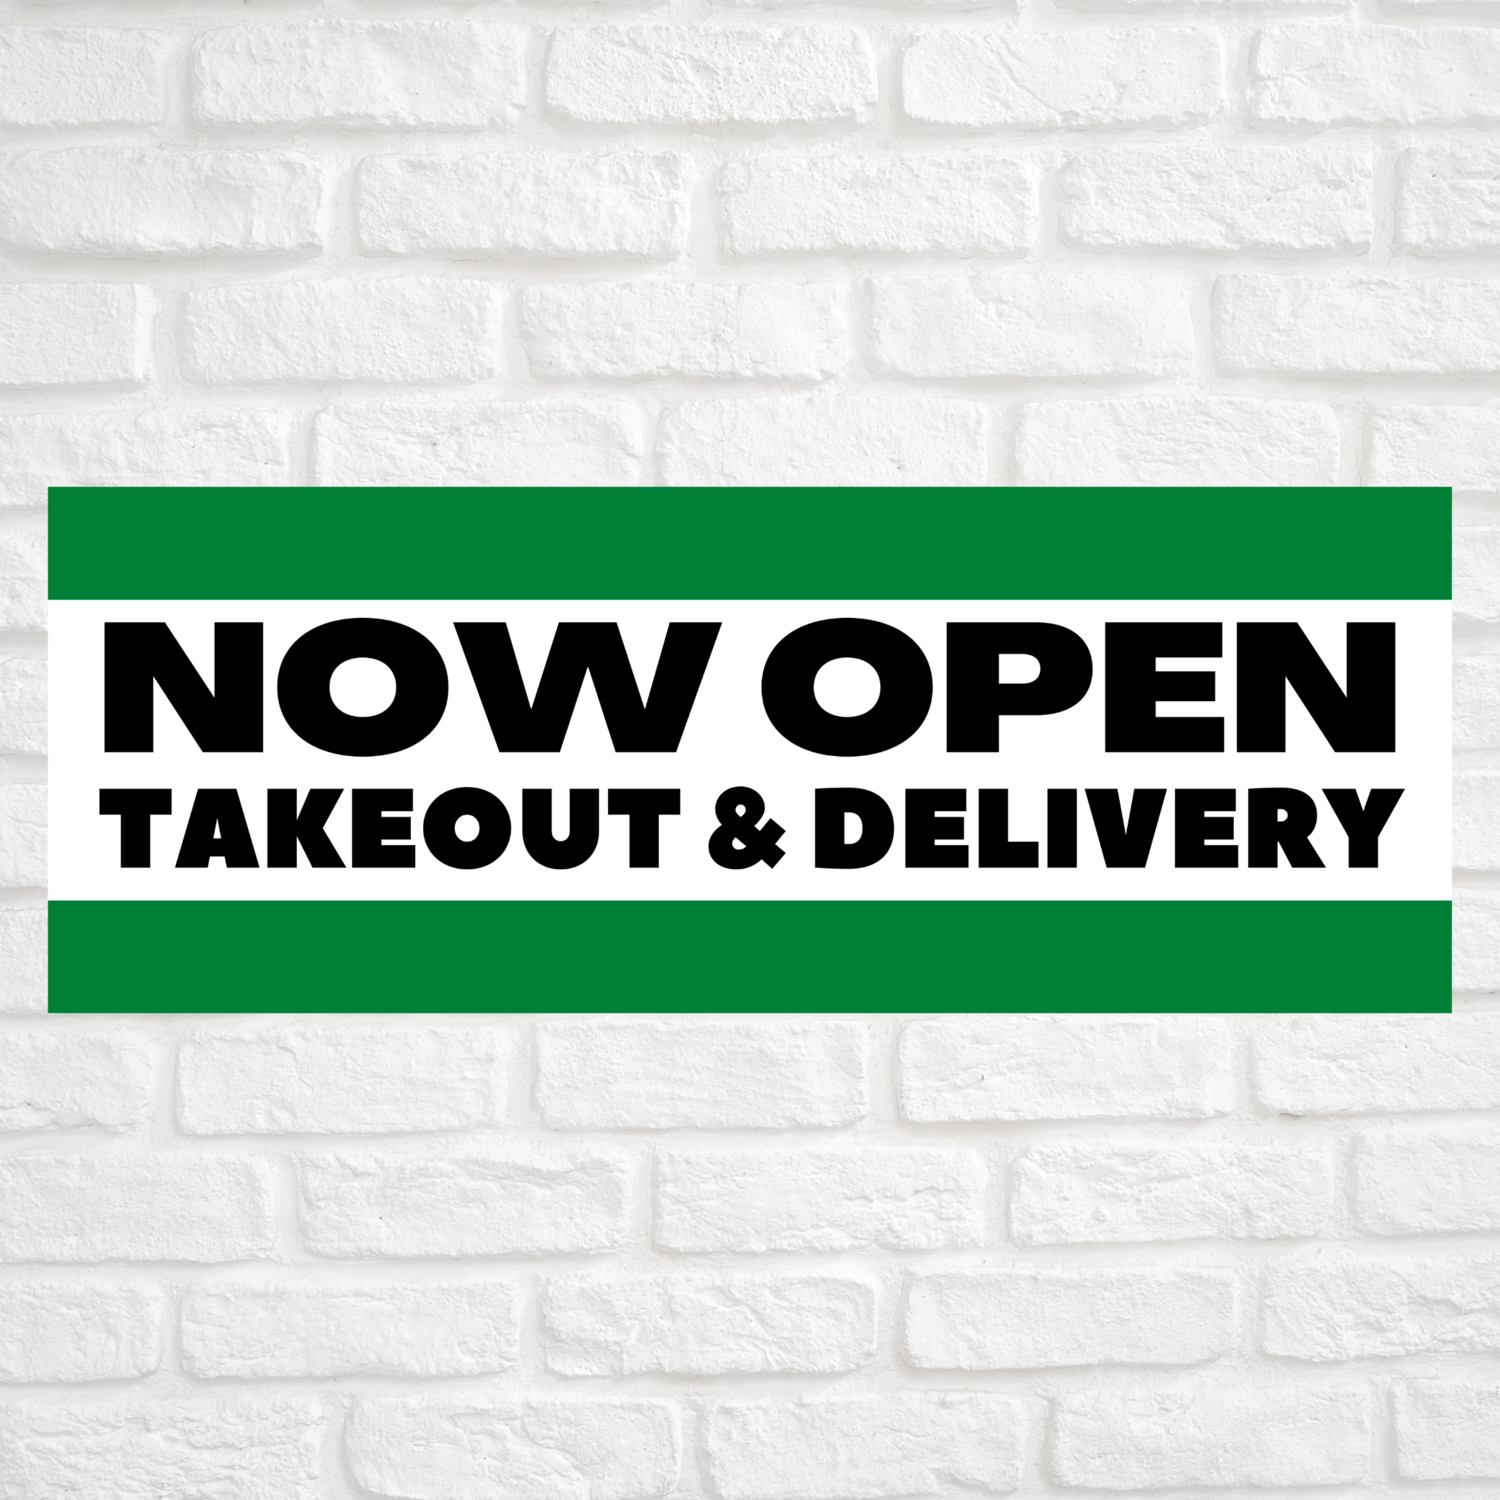 Now Open Takeout & Delivery Green/Green